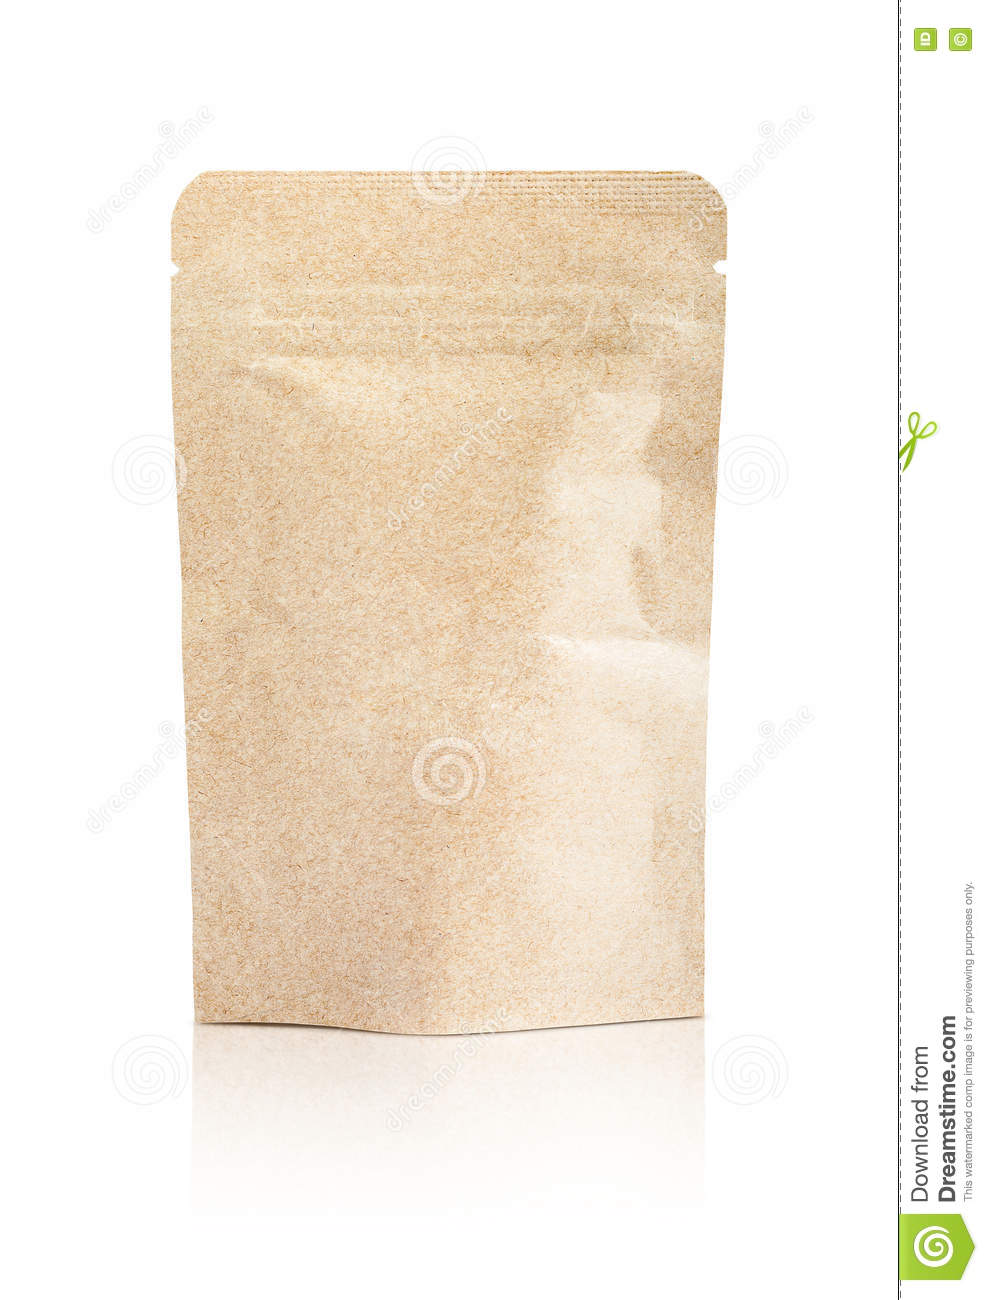 Download Blank Packaging Recycled Kraft Paper Pouch Isolated On White Stock Image - Image of pouch, background: 71084873